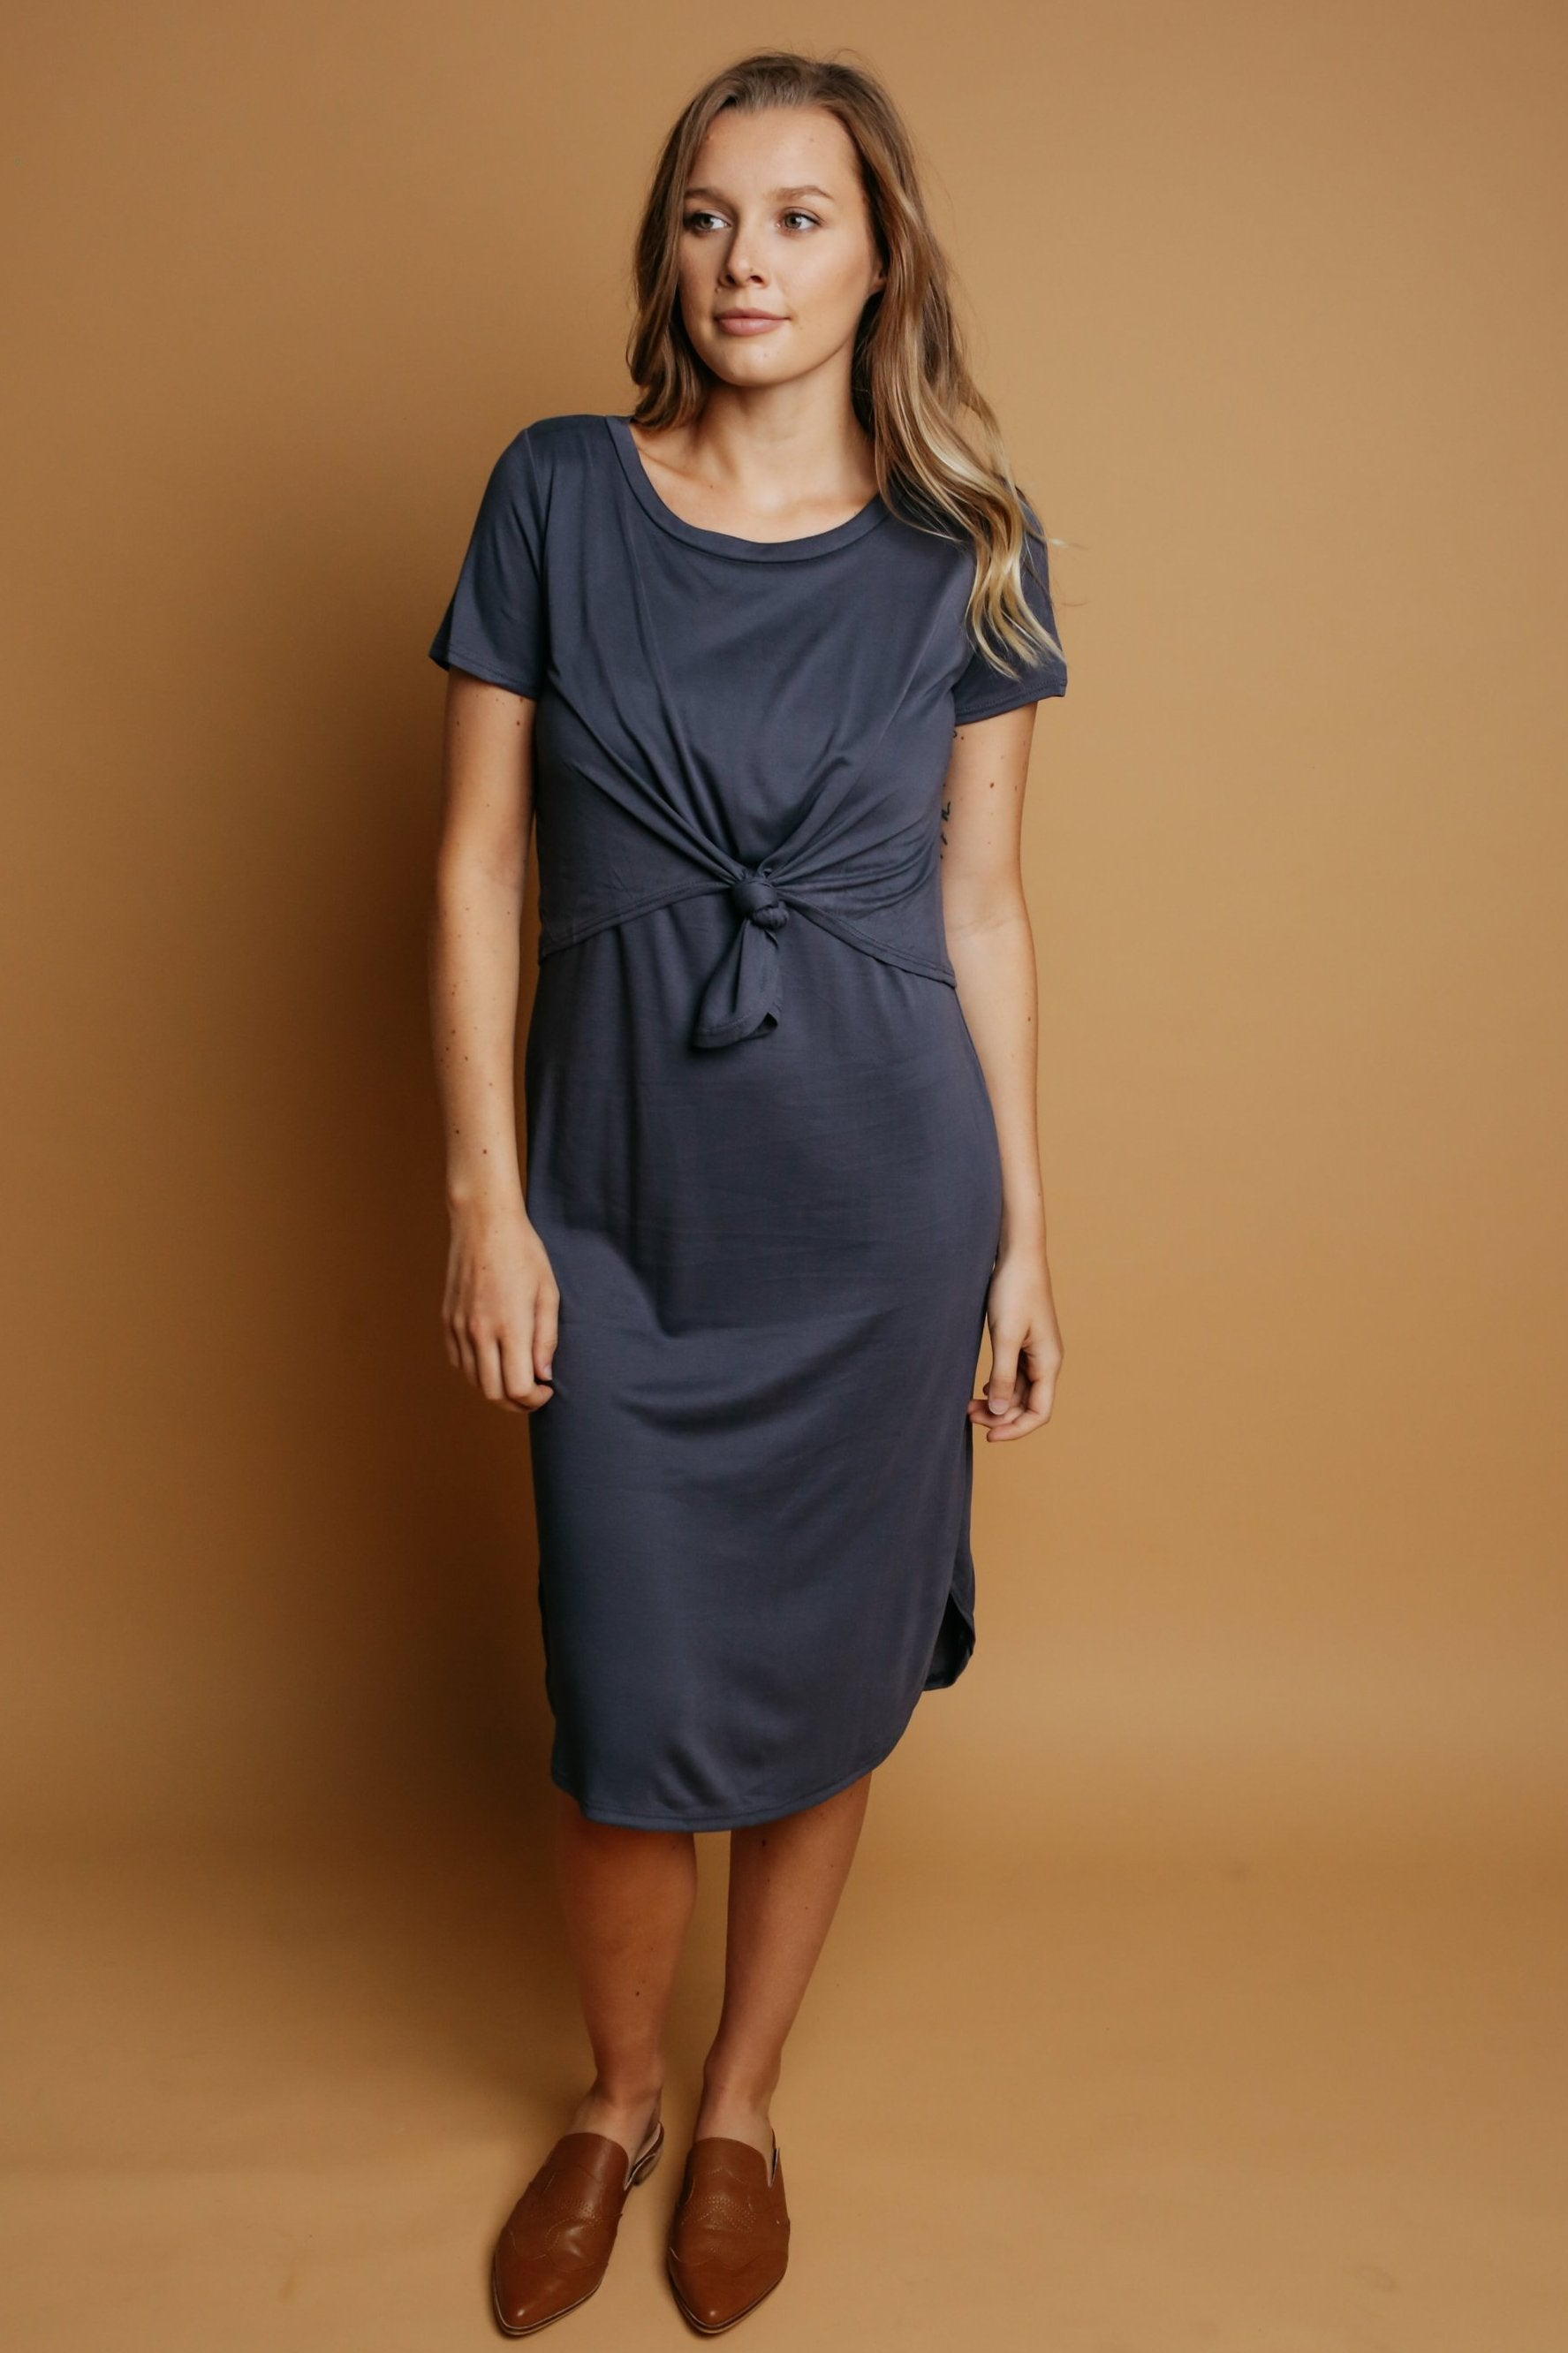 Lucille Dress - Charcoal